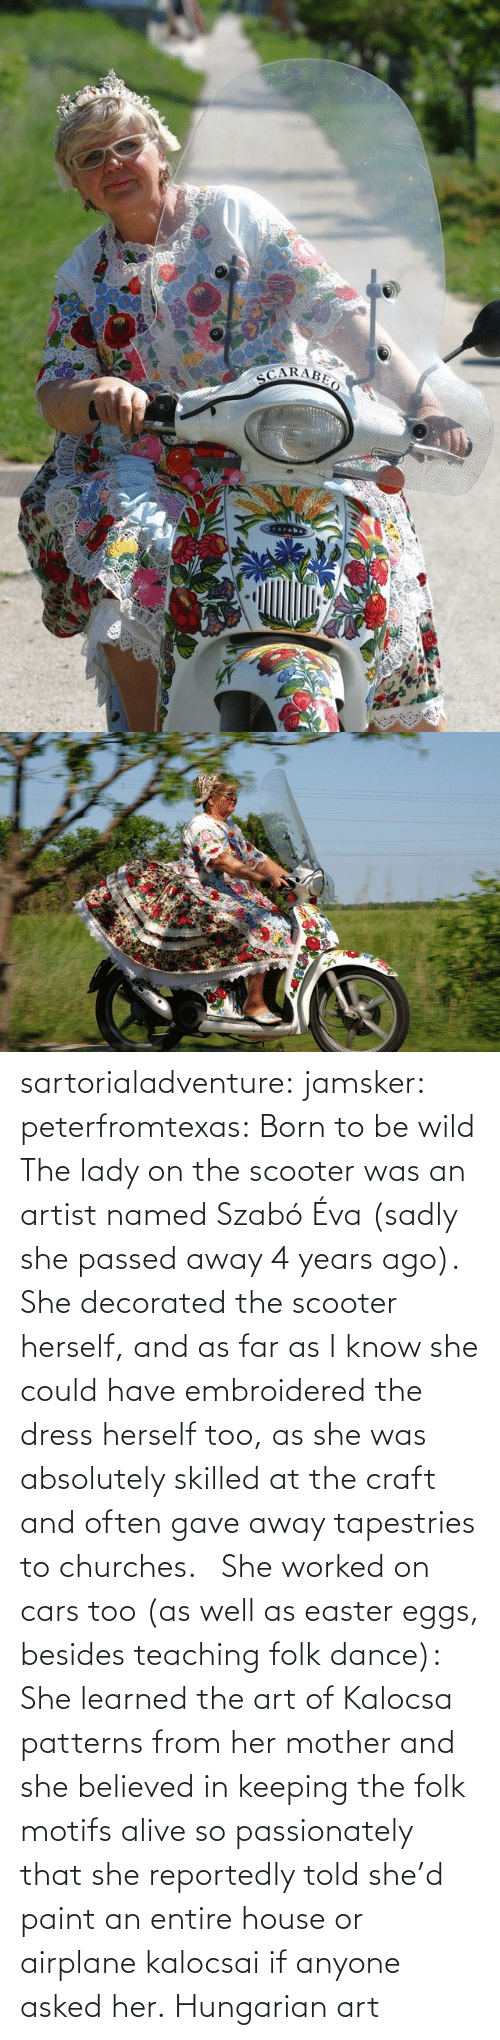 Passed: sartorialadventure: jamsker:  peterfromtexas: Born to be wild The lady on the scooter was an artist named Szabó Éva (sadly she passed away 4 years ago). She decorated the scooter herself, and as far as I know she could have embroidered the dress herself too, as she was absolutely skilled at the craft and often gave away tapestries to churches.   She worked on cars too (as well as easter eggs, besides teaching folk dance): She learned the art of Kalocsa patterns from her mother and she believed in keeping the folk motifs alive so passionately that she reportedly told she'd paint an entire house or airplane kalocsai if anyone asked her.  Hungarian art